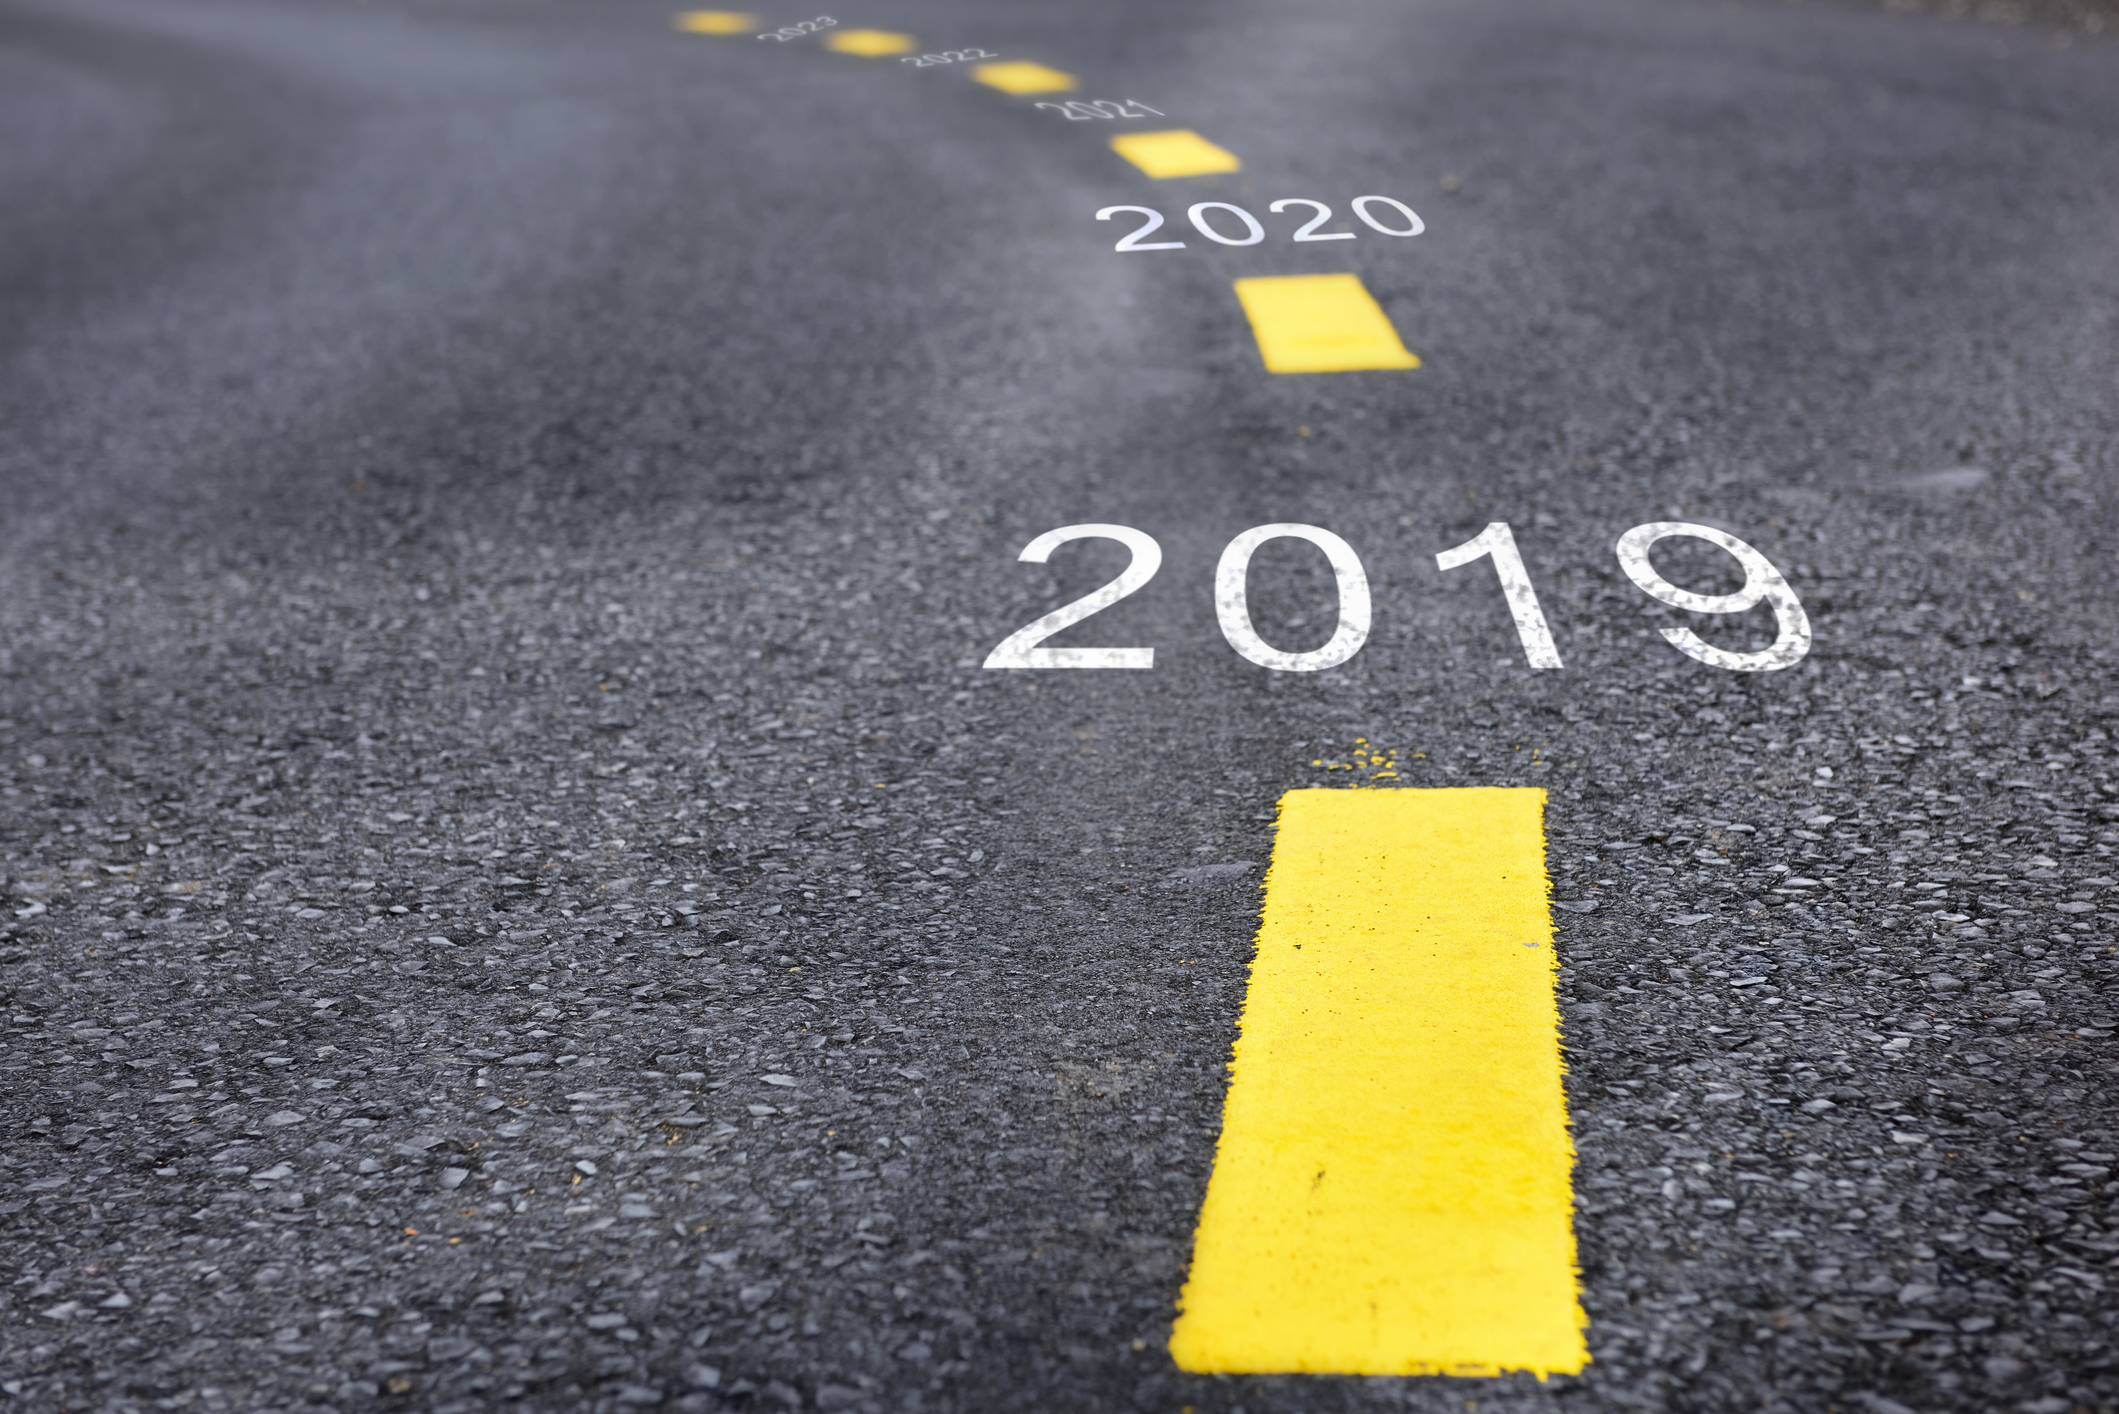 Cloud Predictions for 2019 and beyond